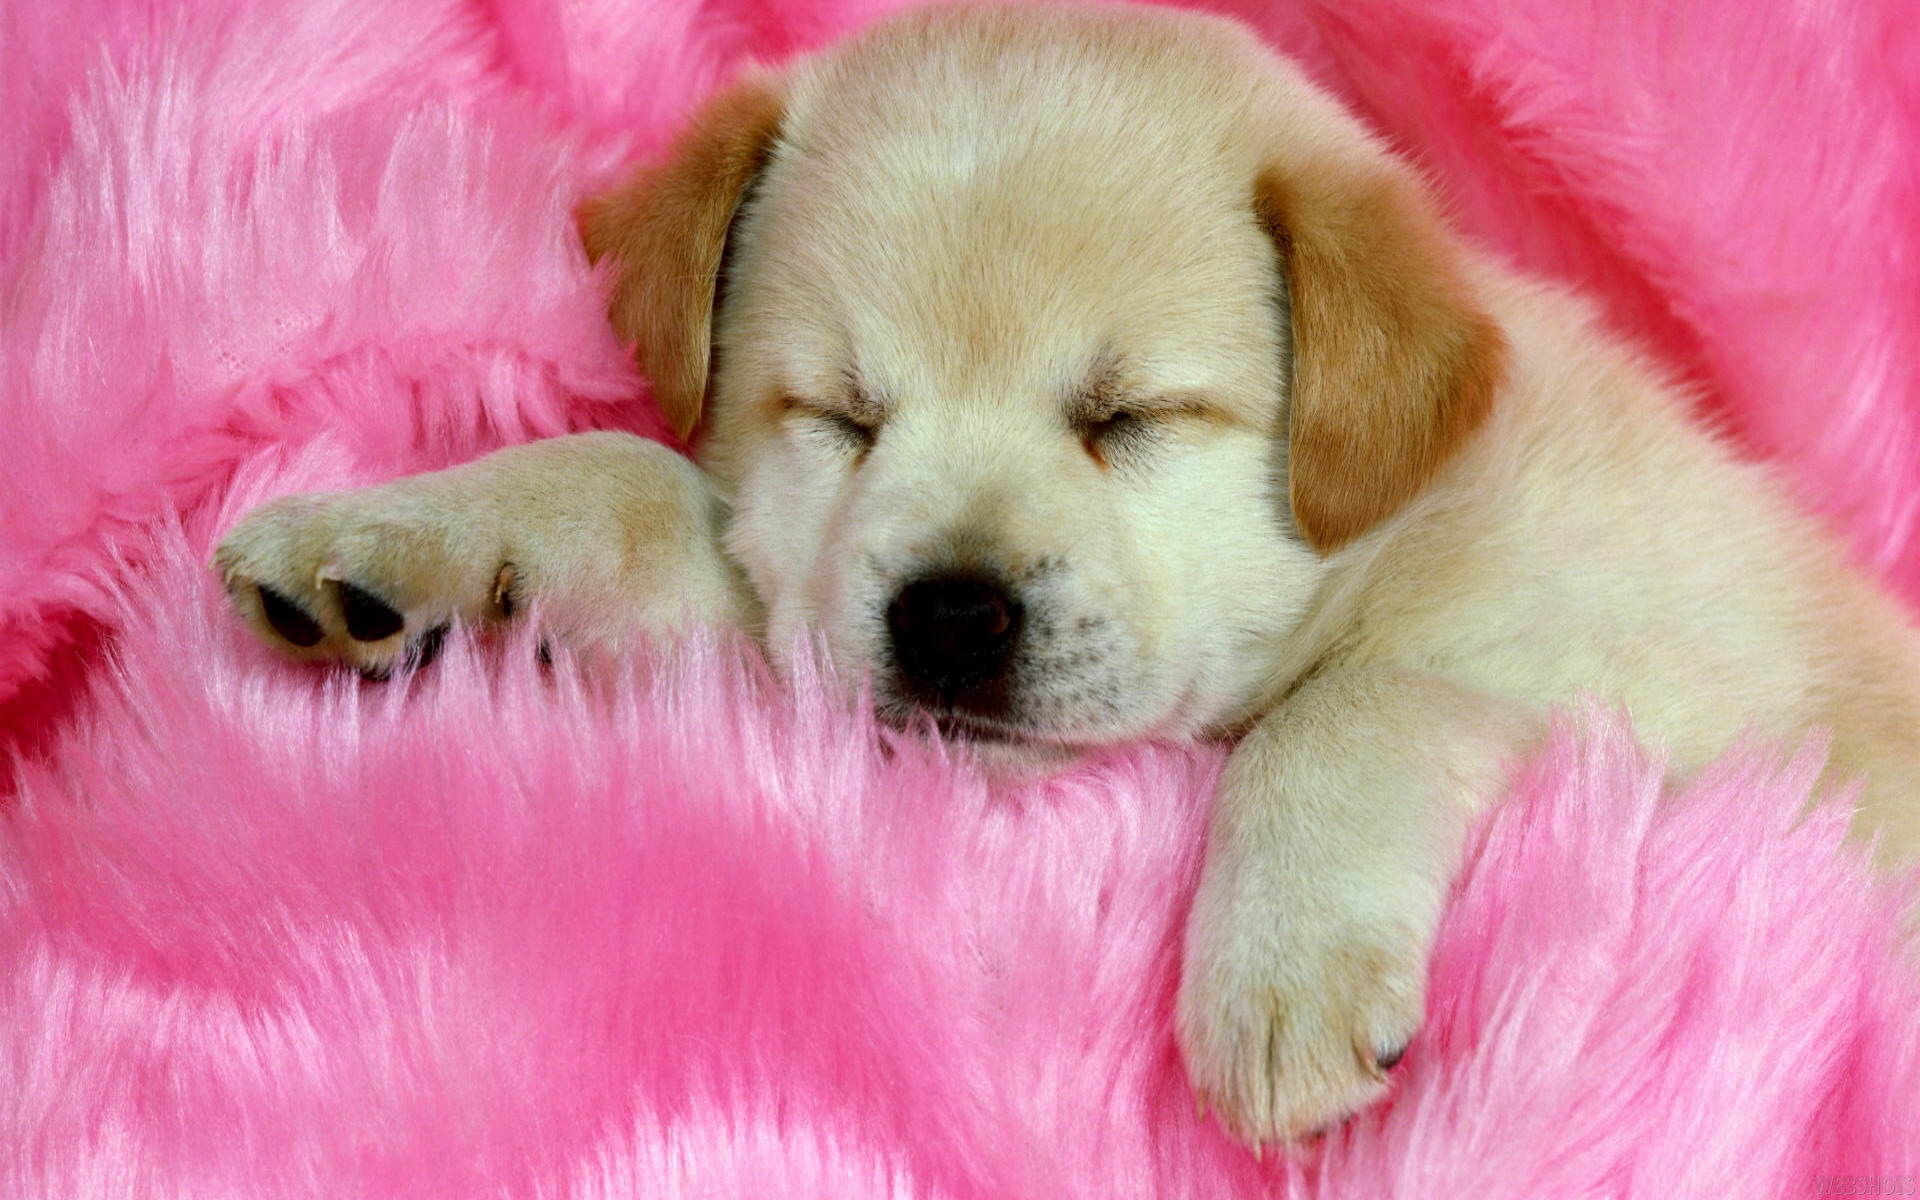 Puppy cute puppies photos free download – Widescreen Wallpaper